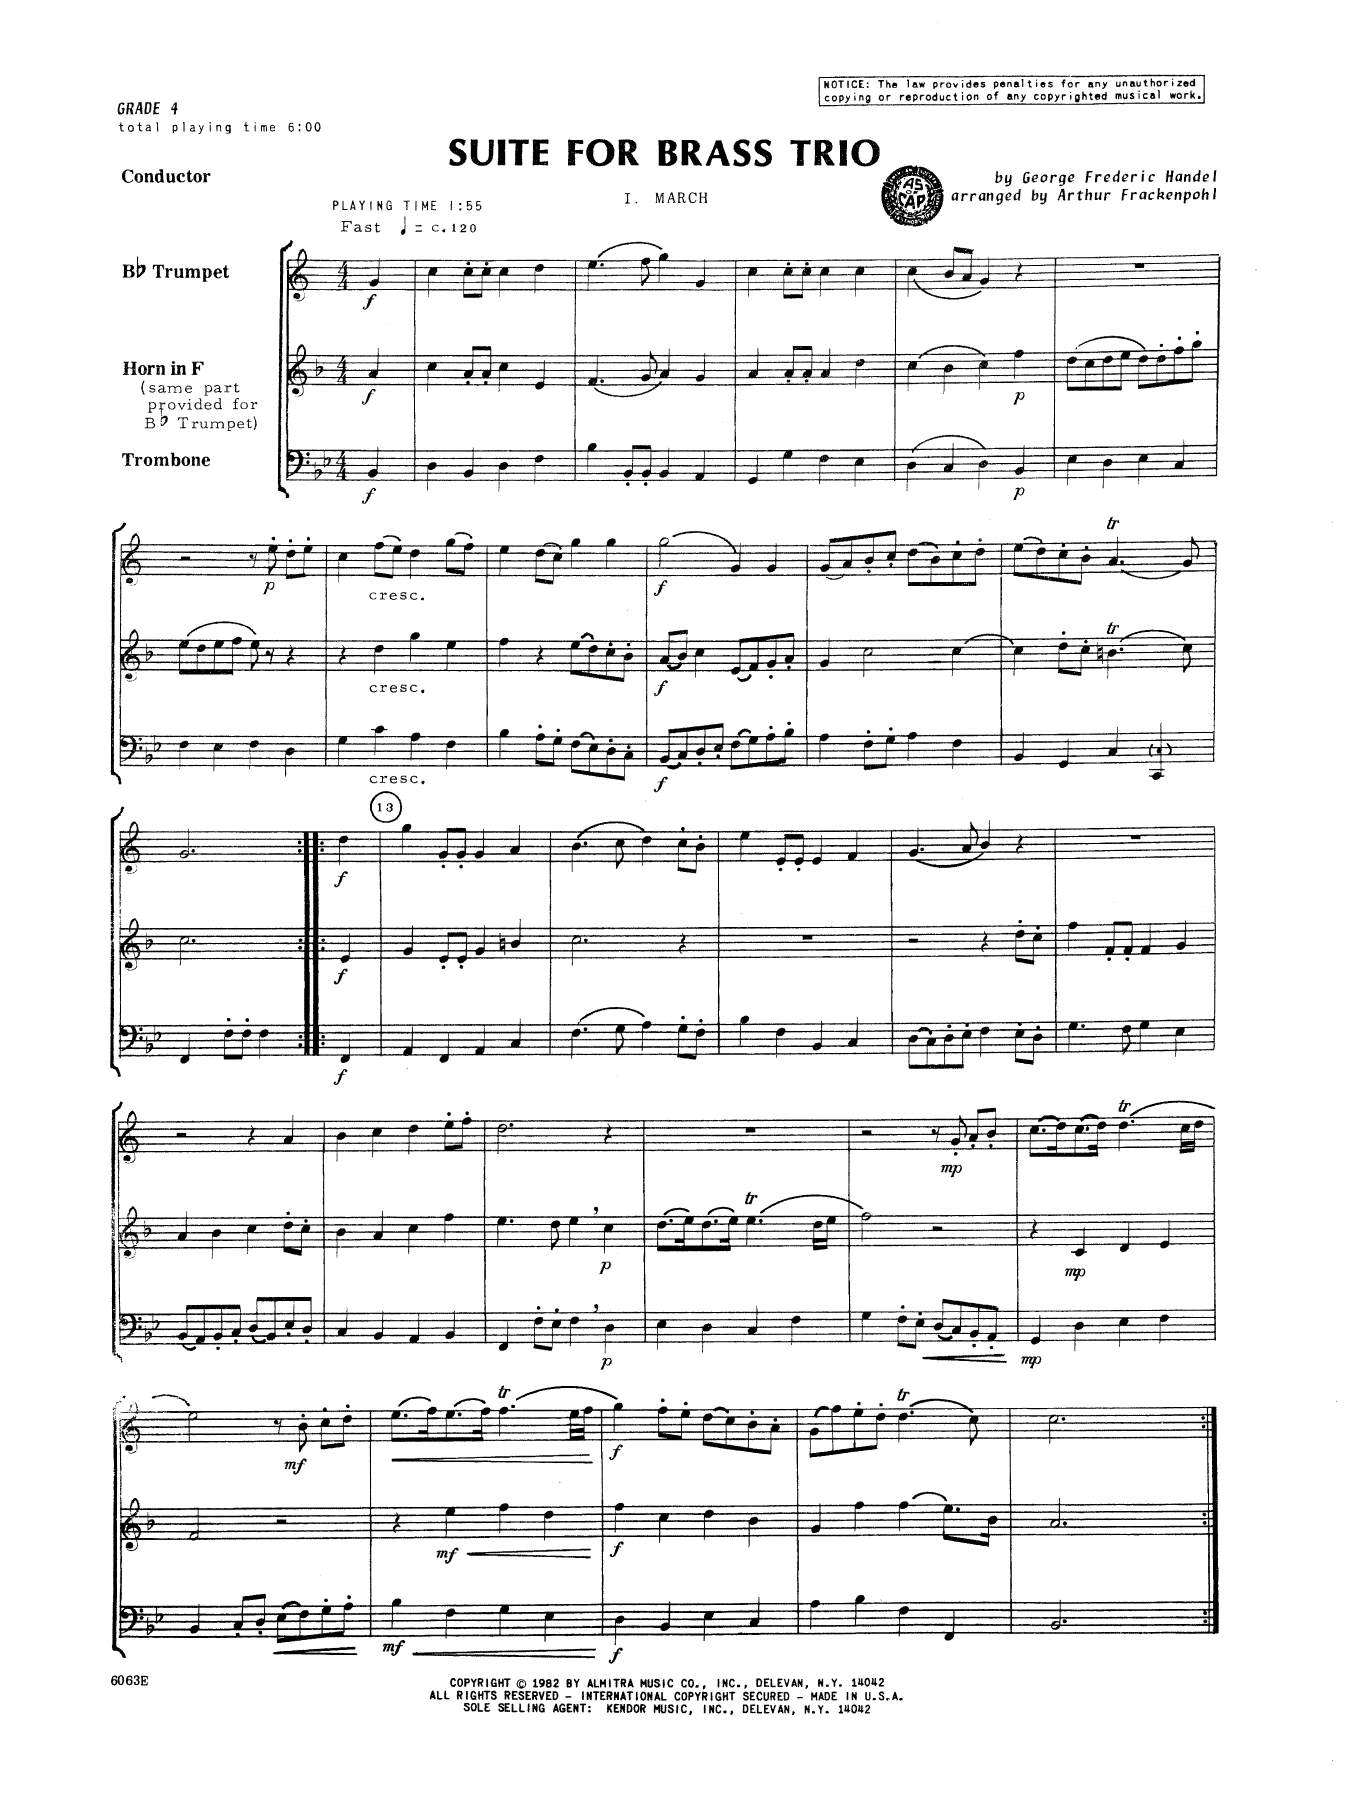 Suite For Brass Trio (COMPLETE) sheet music for brass trio by George Frideric Handel